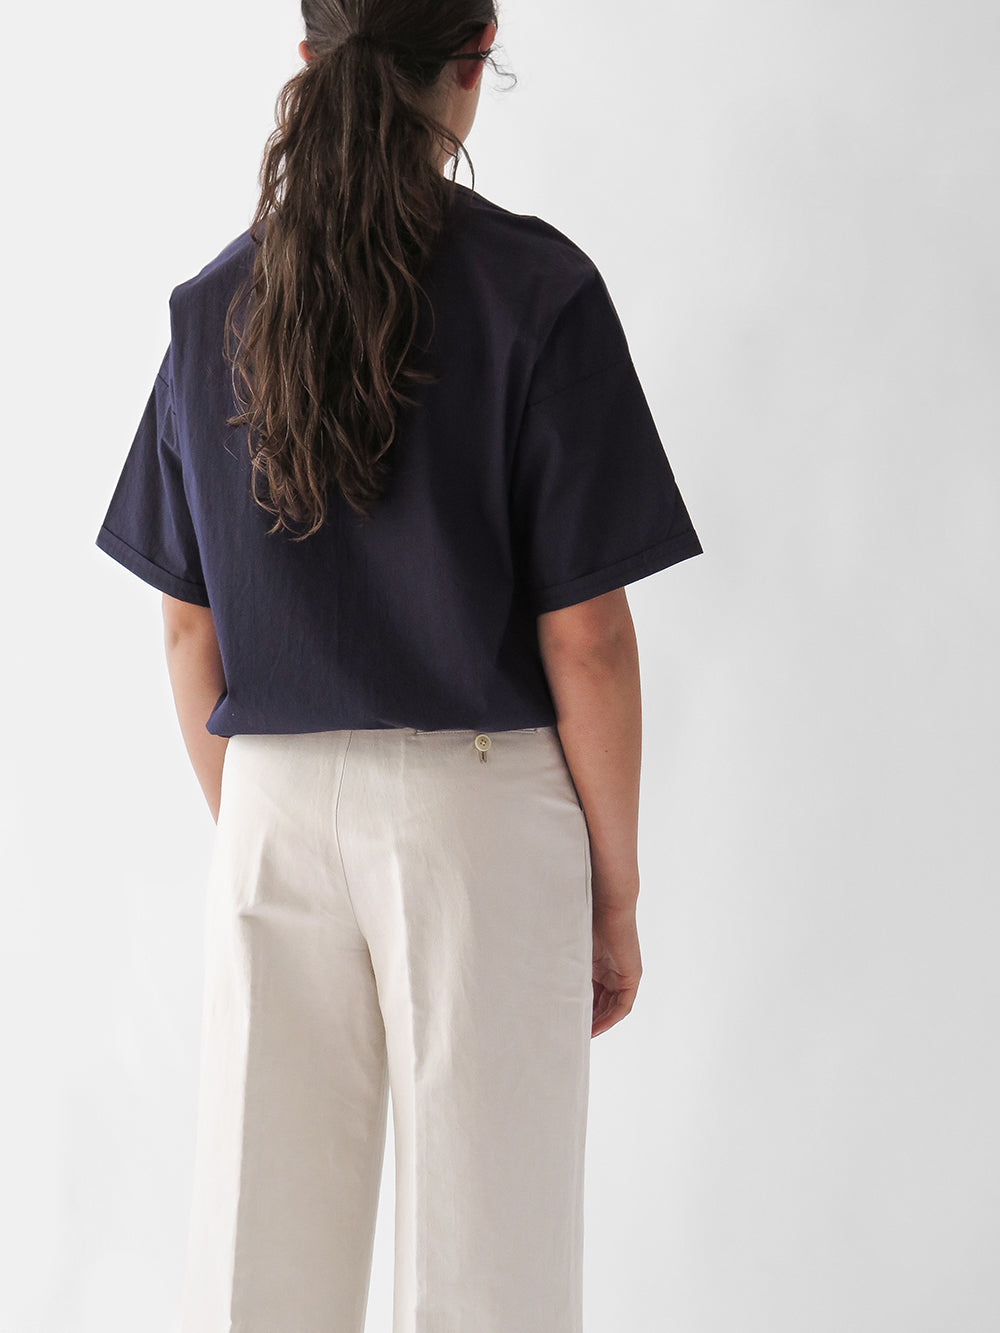 nico slow shirt in navy